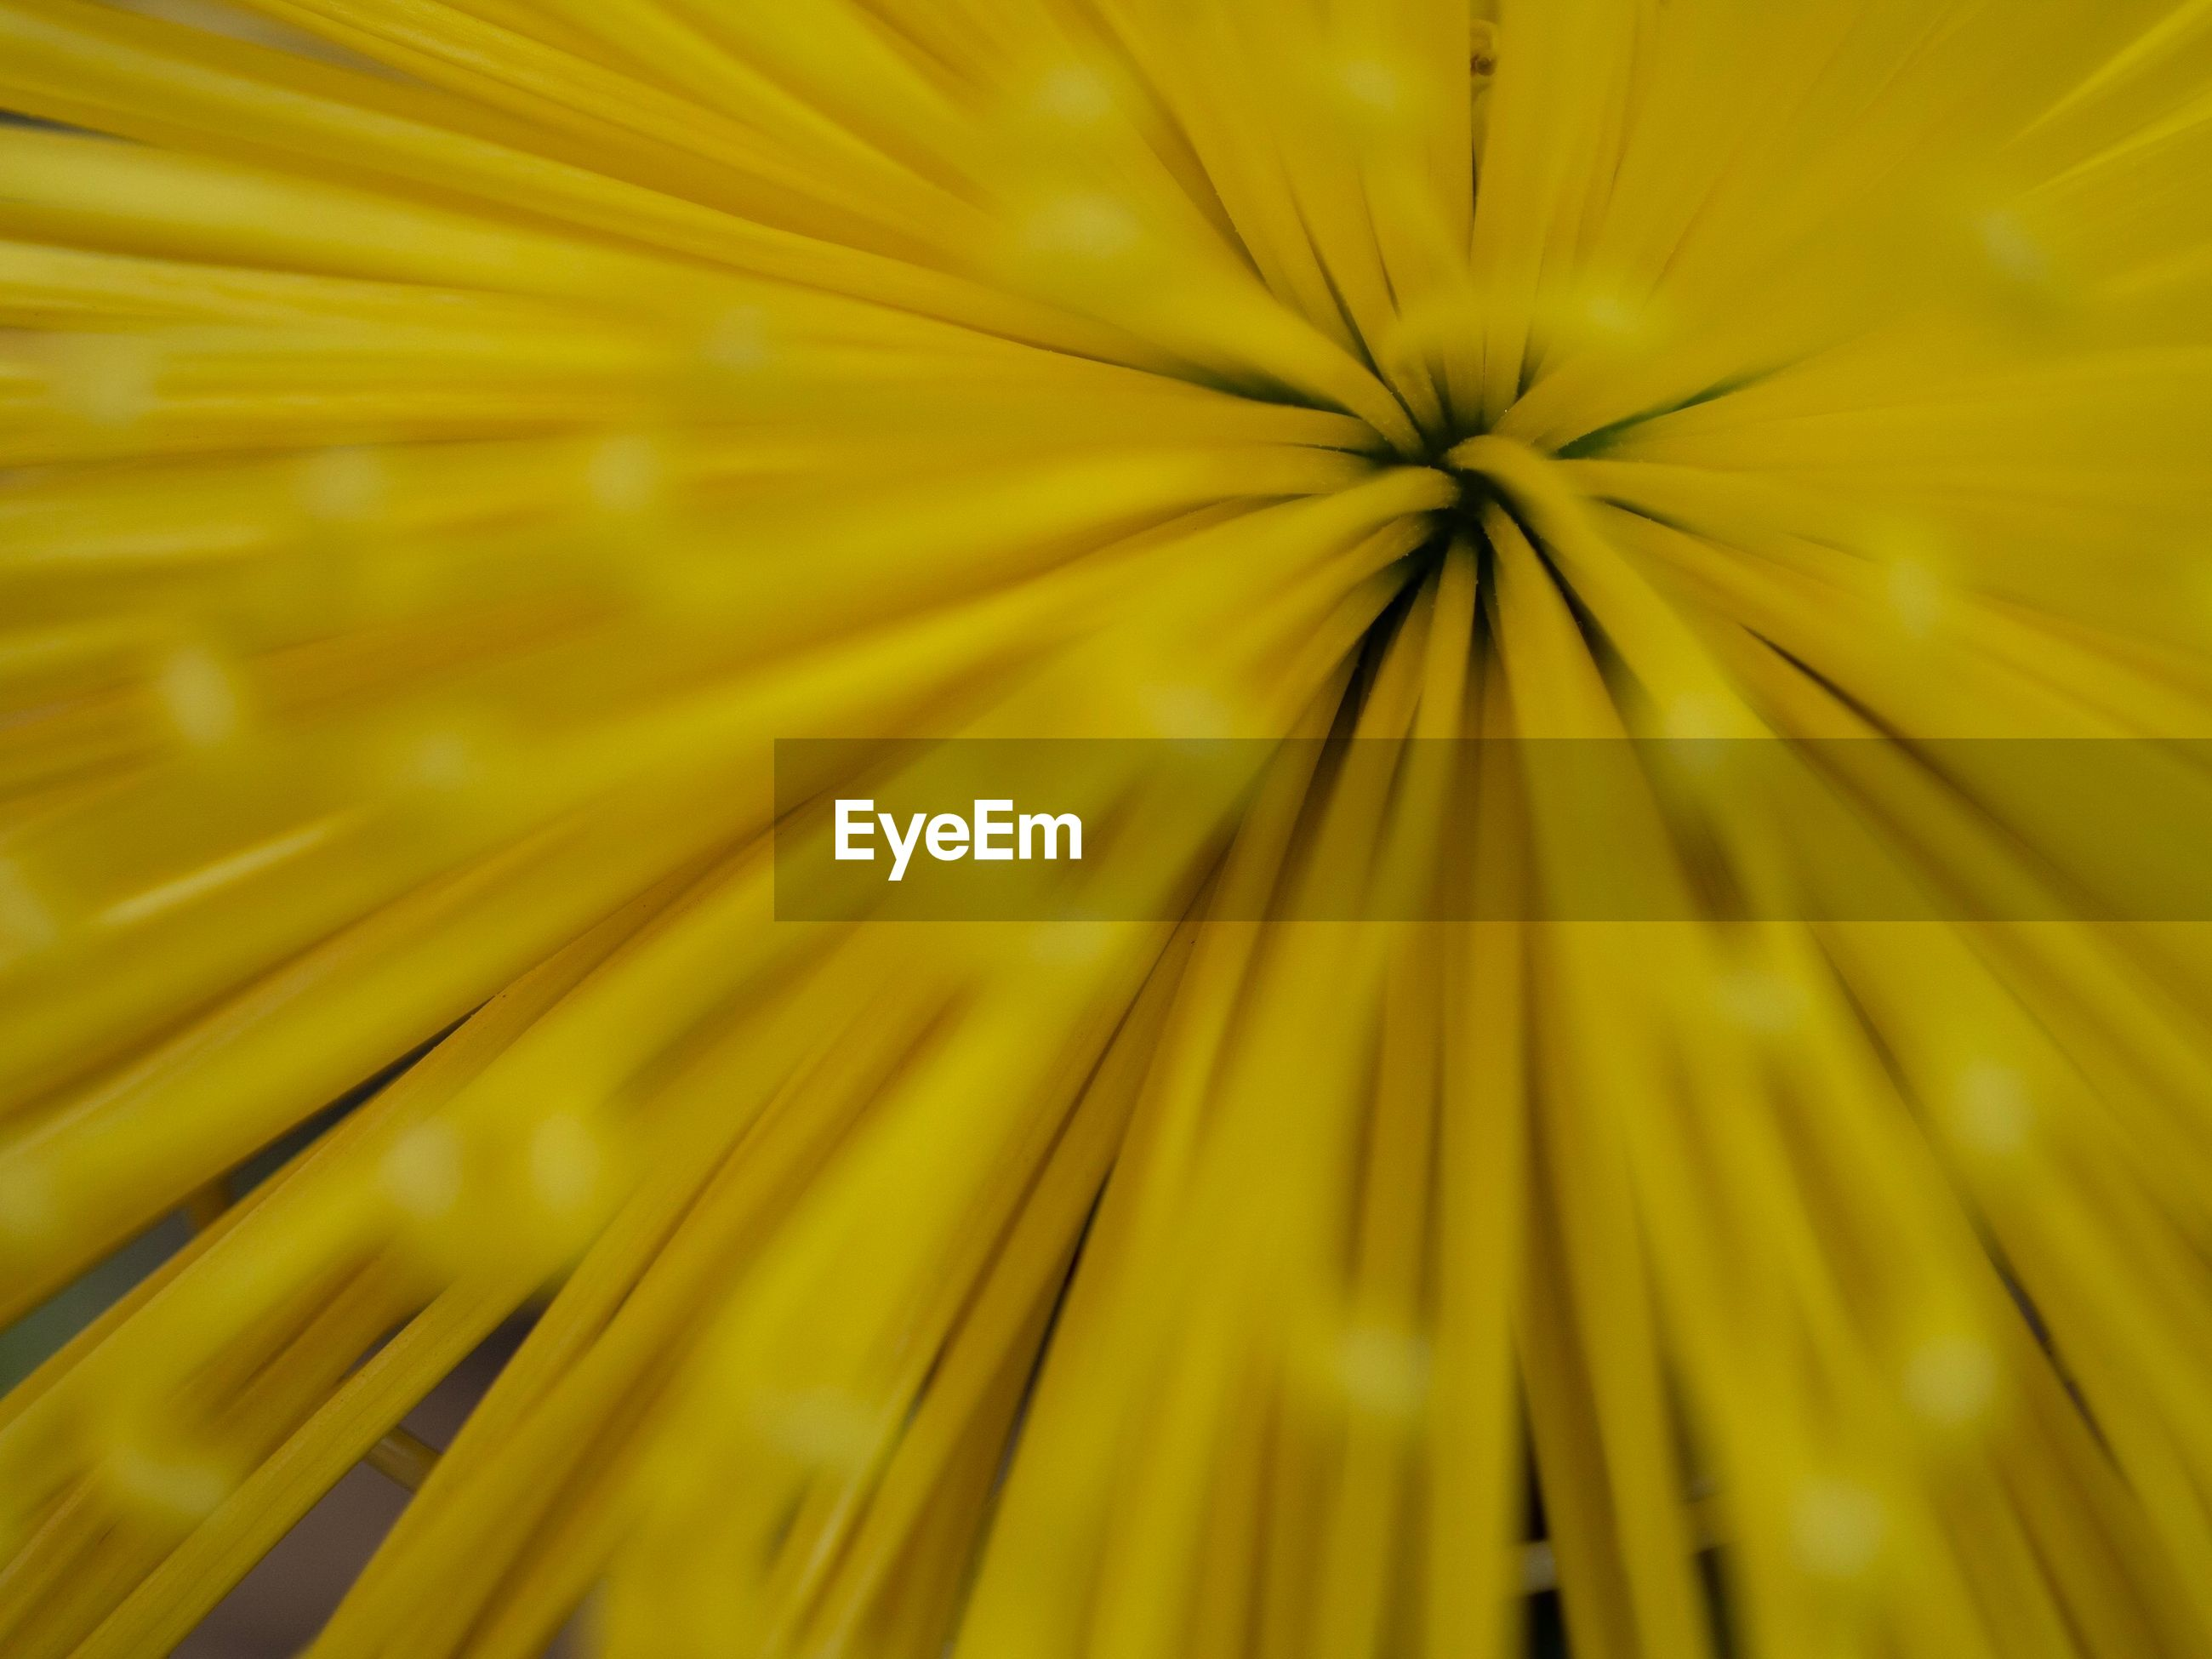 CLOSE-UP OF YELLOW DANDELION